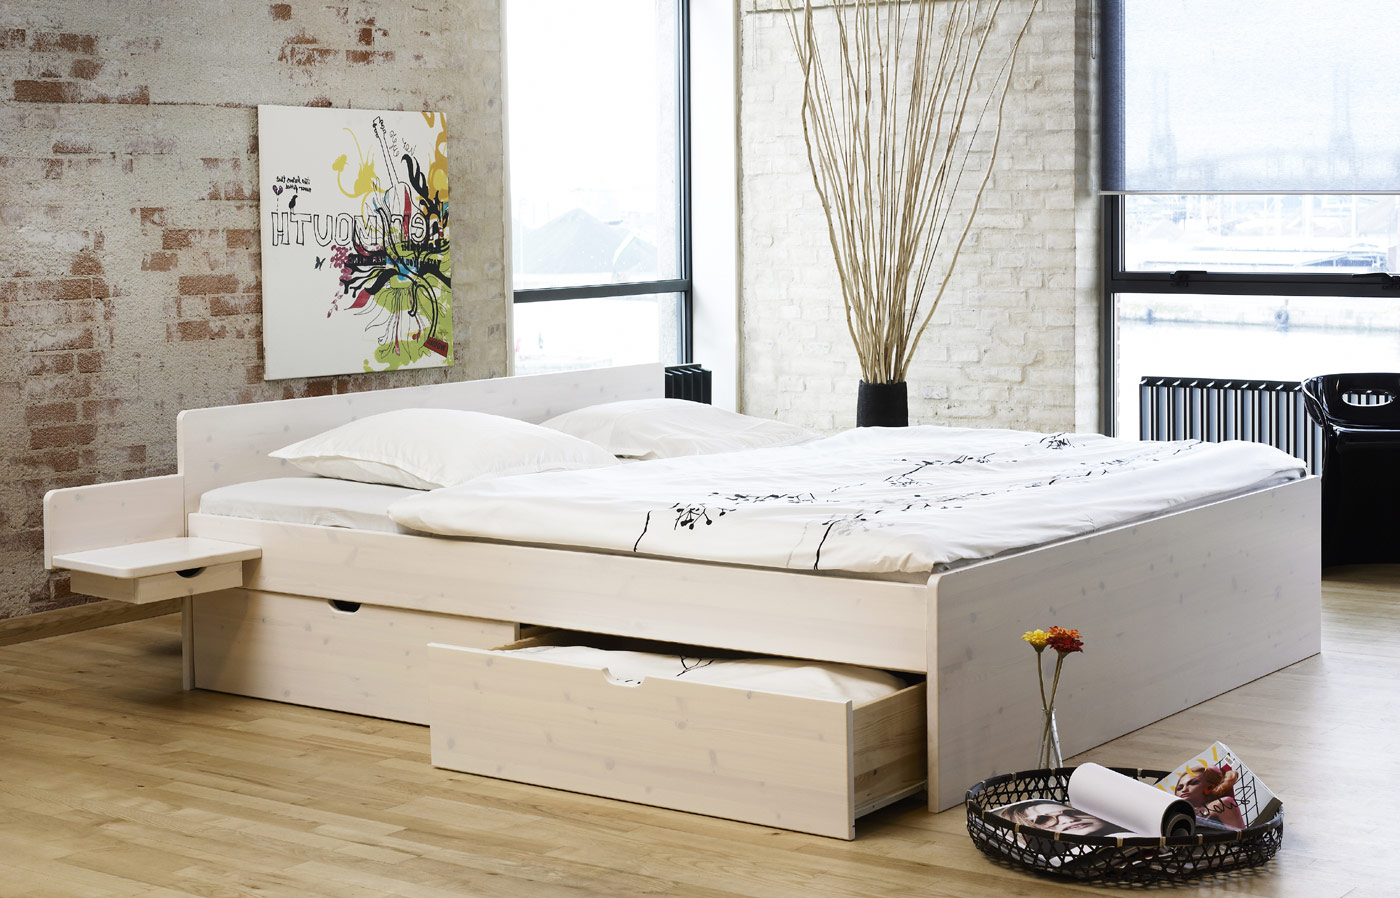 bett mit nachttisch wohn design. Black Bedroom Furniture Sets. Home Design Ideas